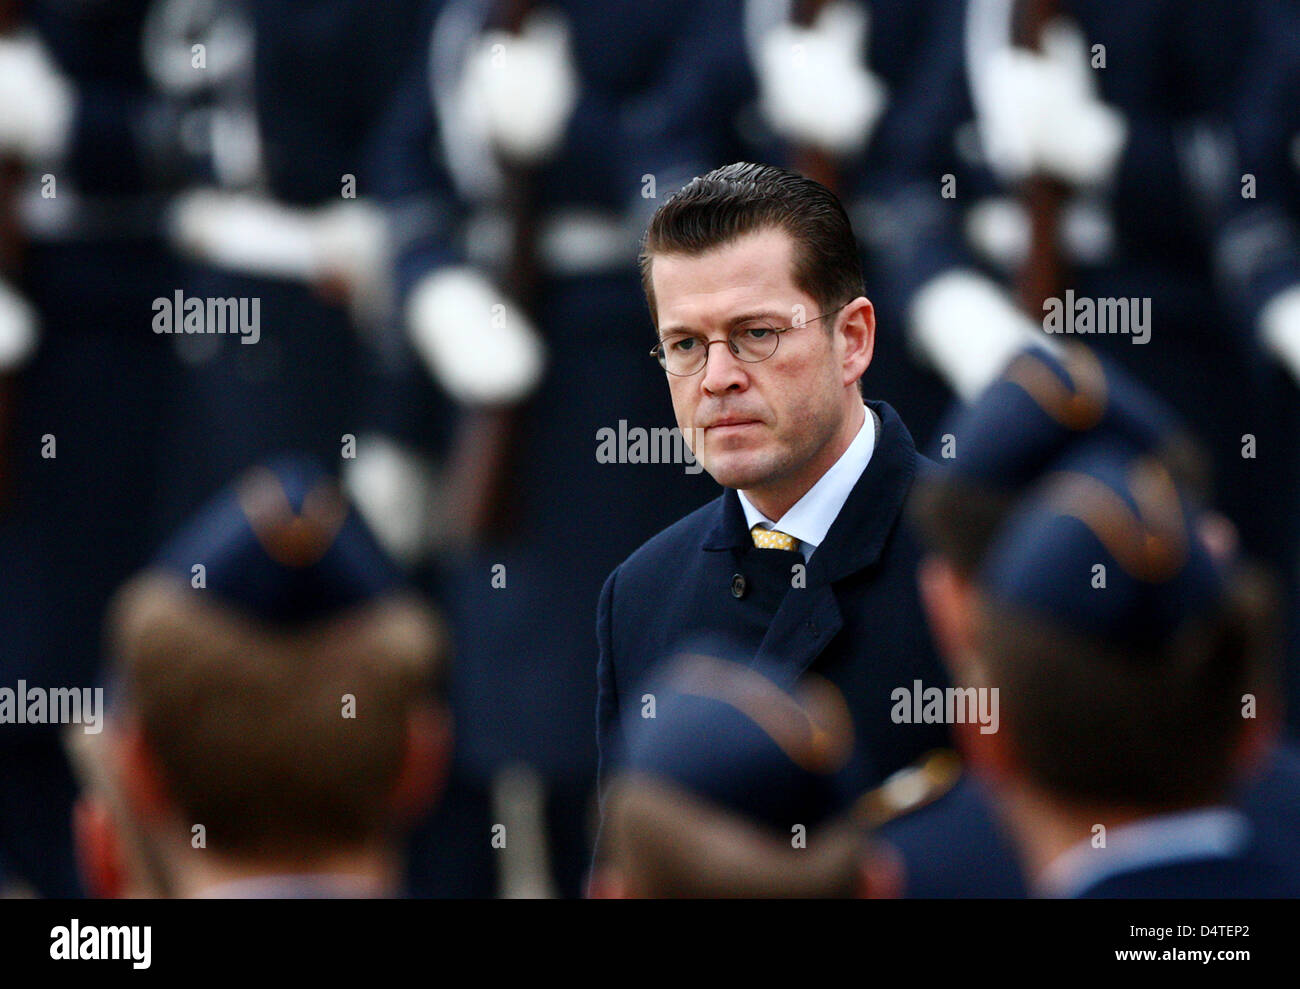 Germany?s Minister of Defence Karl-Theodor zu Guttenberg walks the guard of honour at the air base in Noervenich, - Stock Image